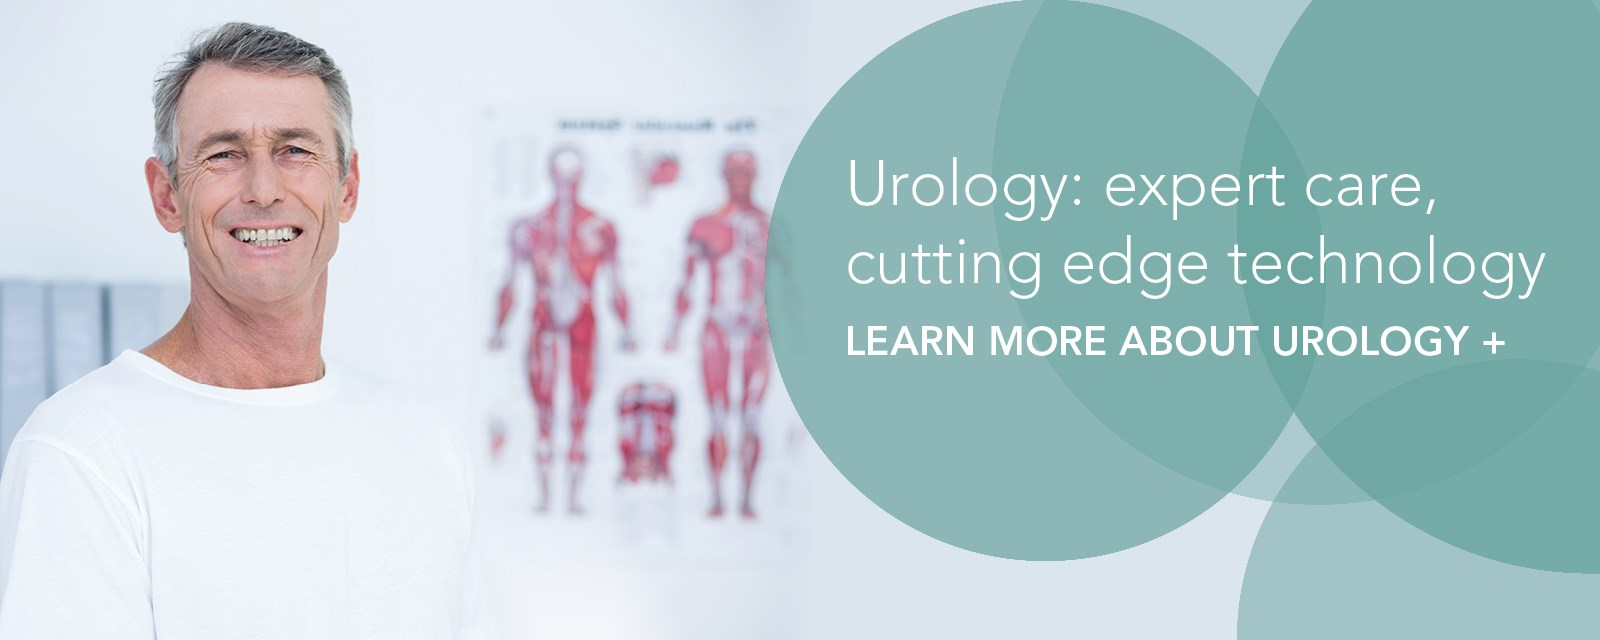 Urology: expert care, cutting edge technology